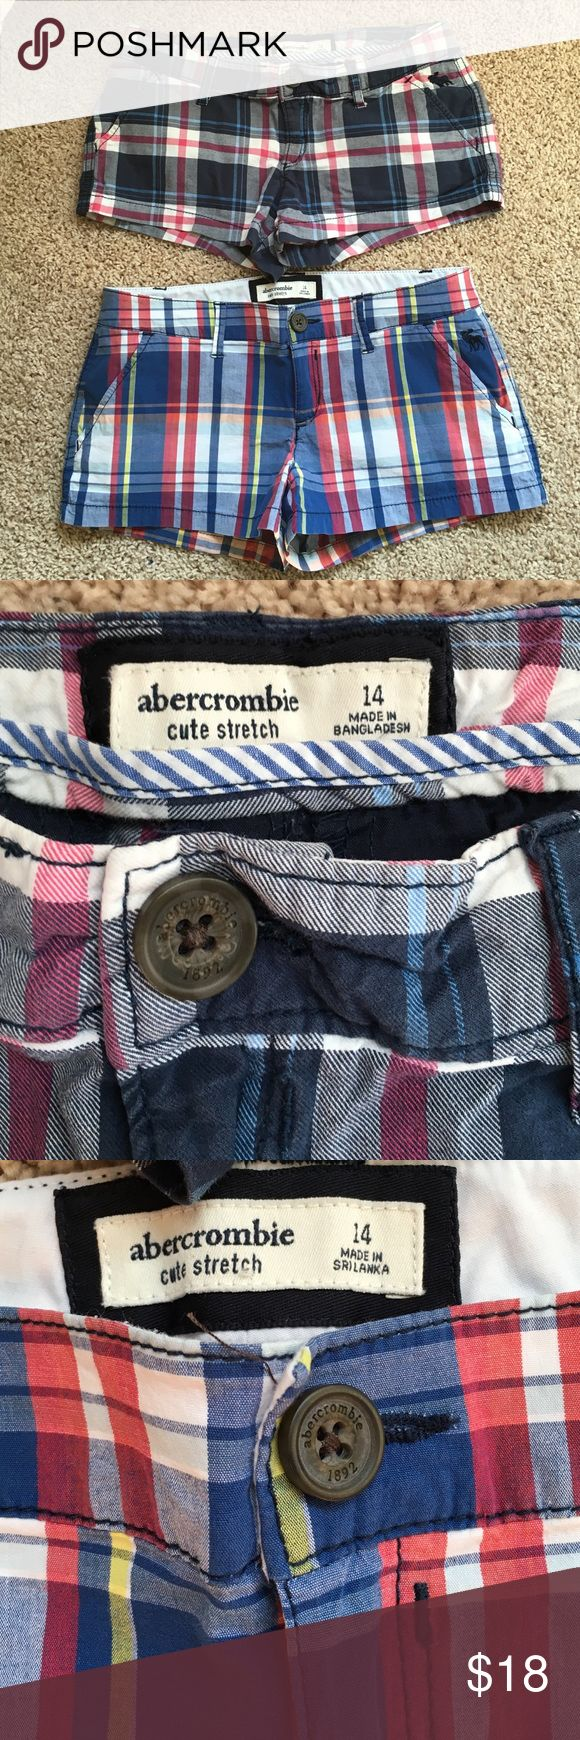 Abercrombie girls shorts sz14 or ladies 00 Abercrombie girls plaid shorts cute stretch size 14 or can fit ladies 00. Very good condition. Selling as a bundle or will sell separately. abercrombie kids Shorts